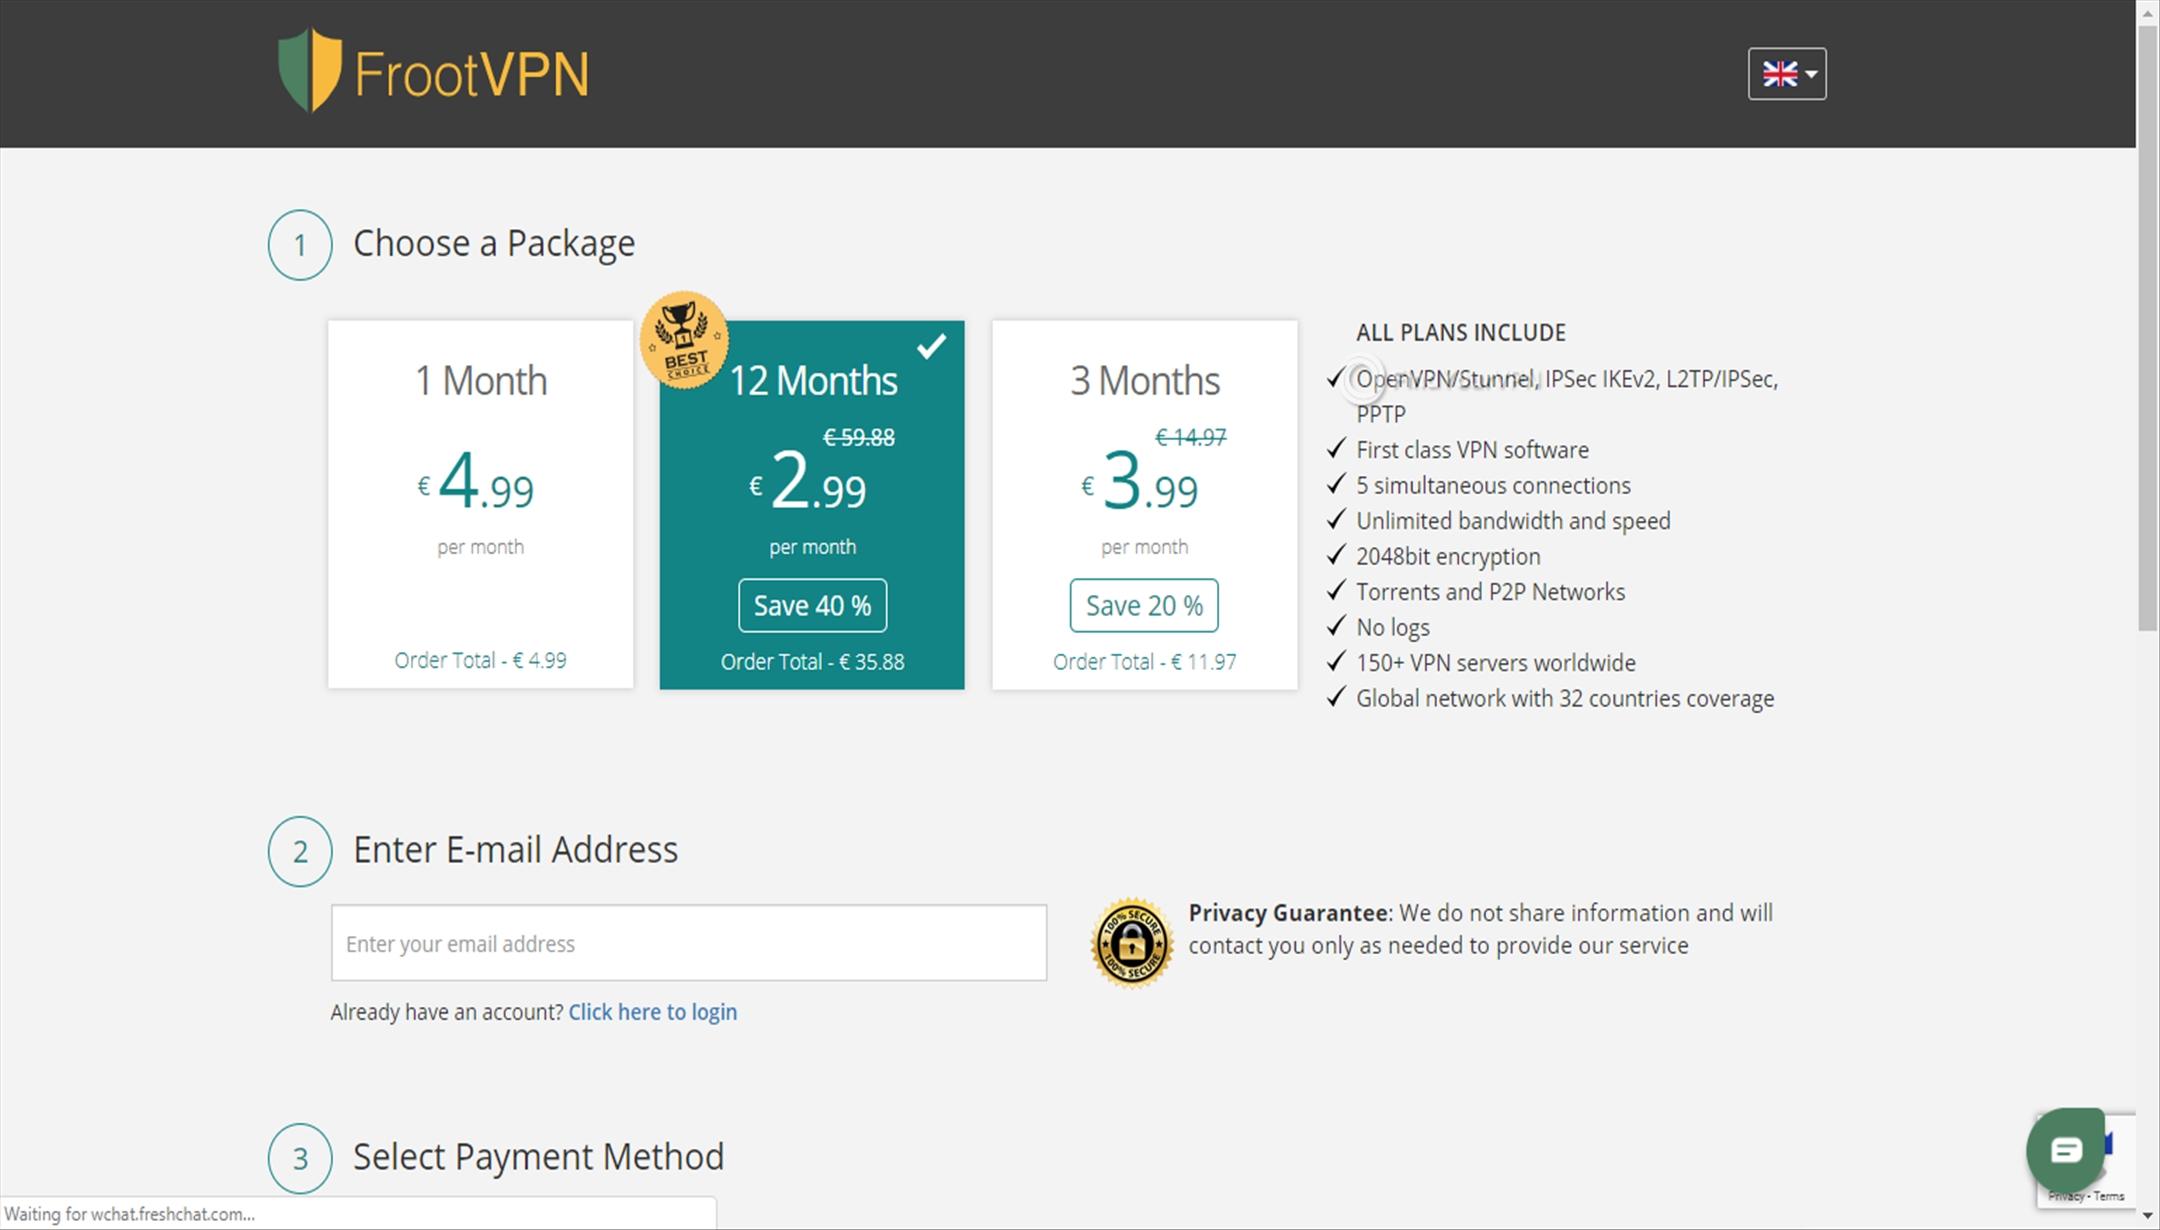 FrootVPN Creating Account Plans